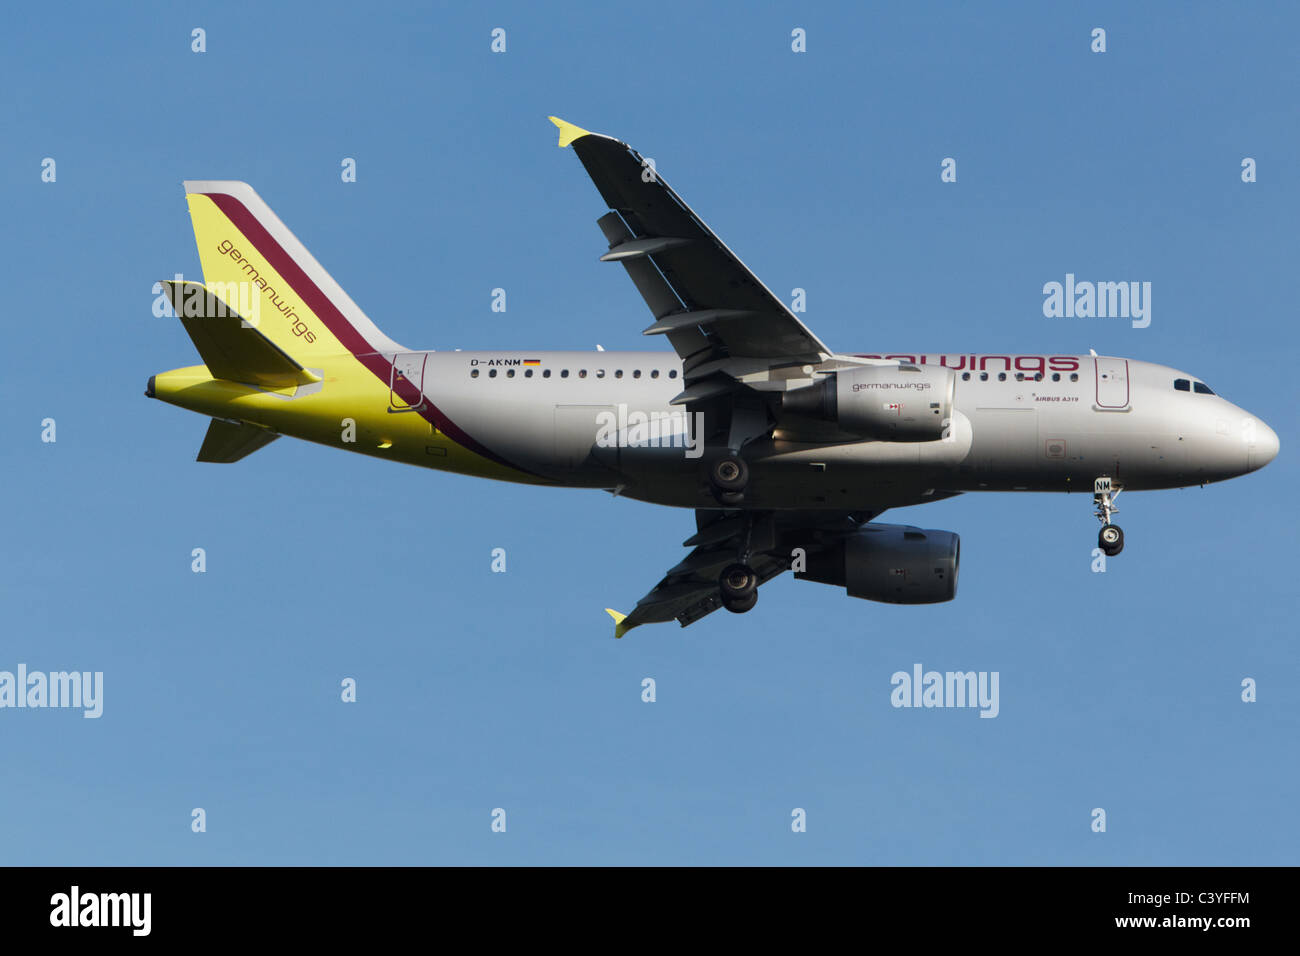 Germanwings Airbus A319-112 on final approach - Stock Image